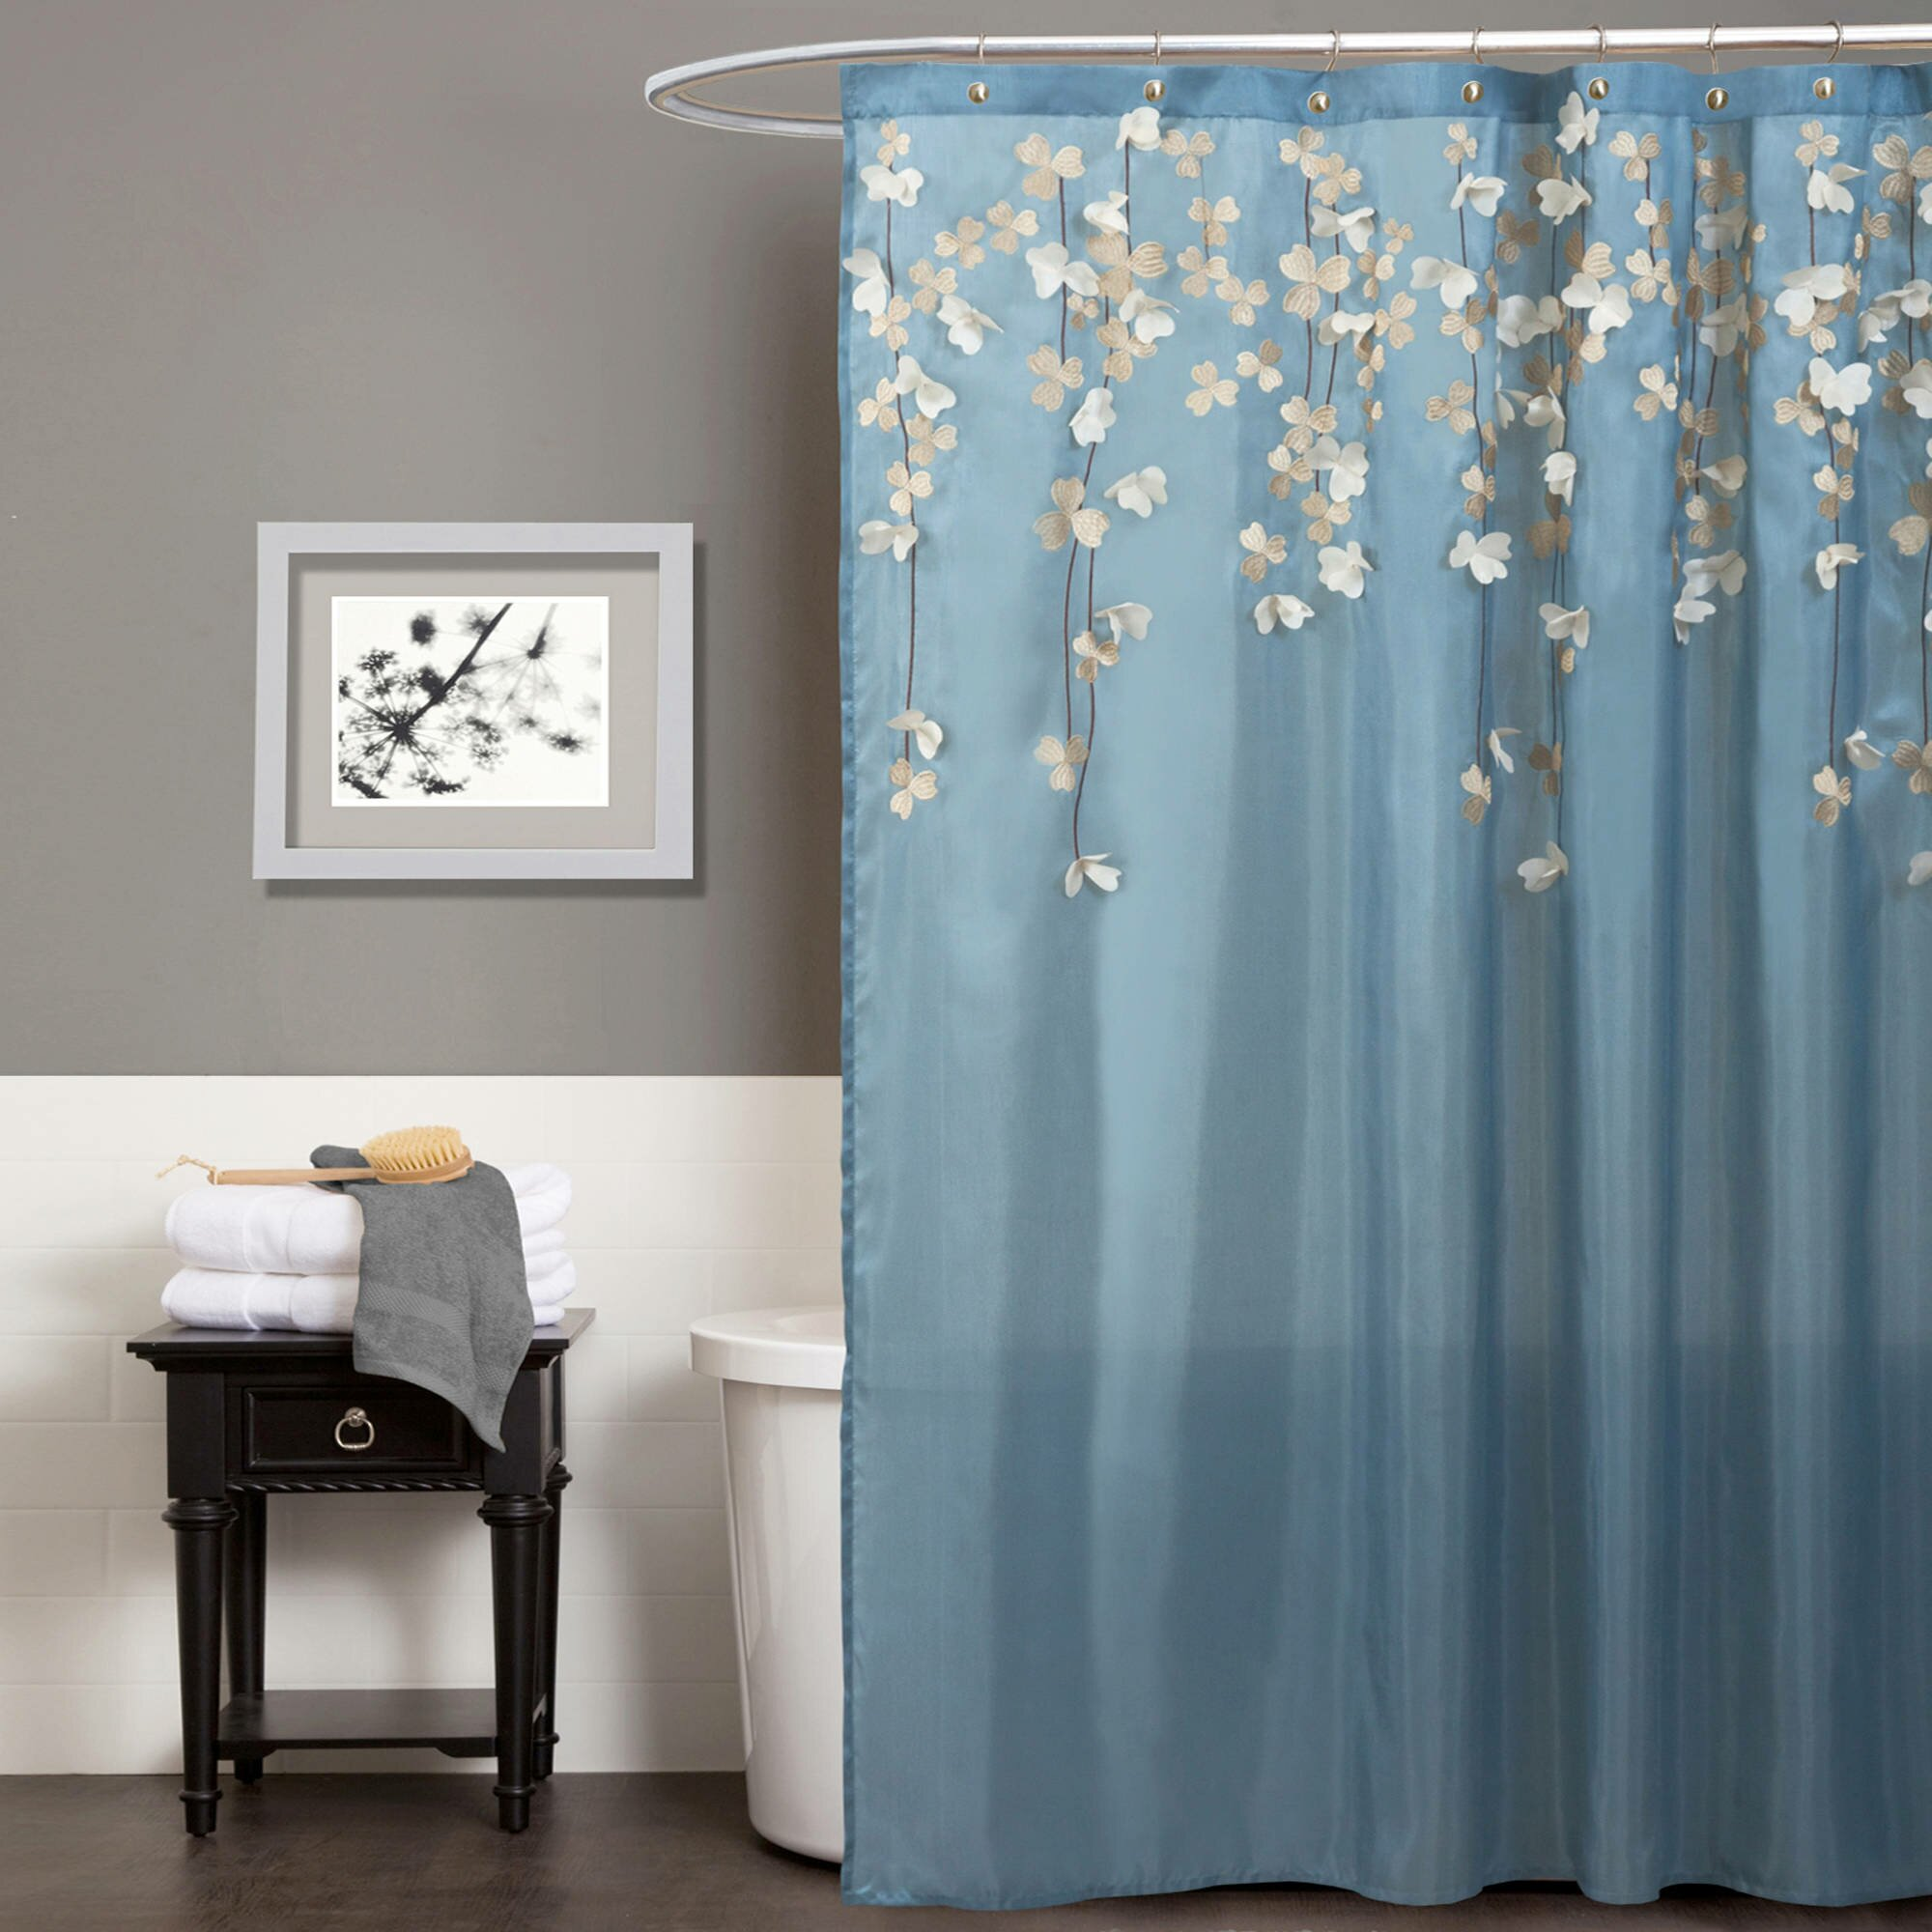 Curtain: Walmart Shower Curtain